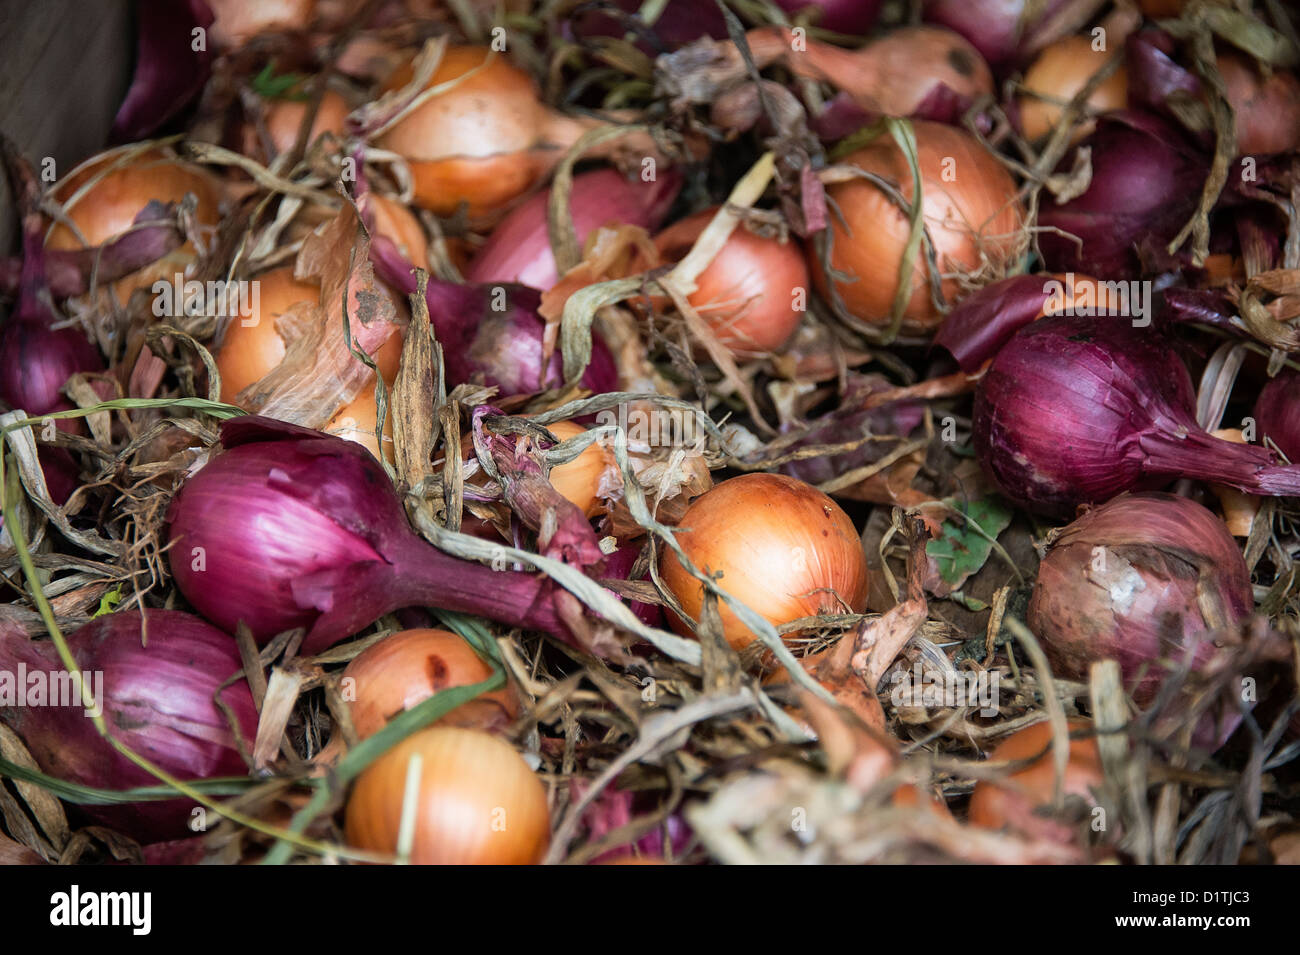 Freshly harvested onions, Allium cepa - Stock Image